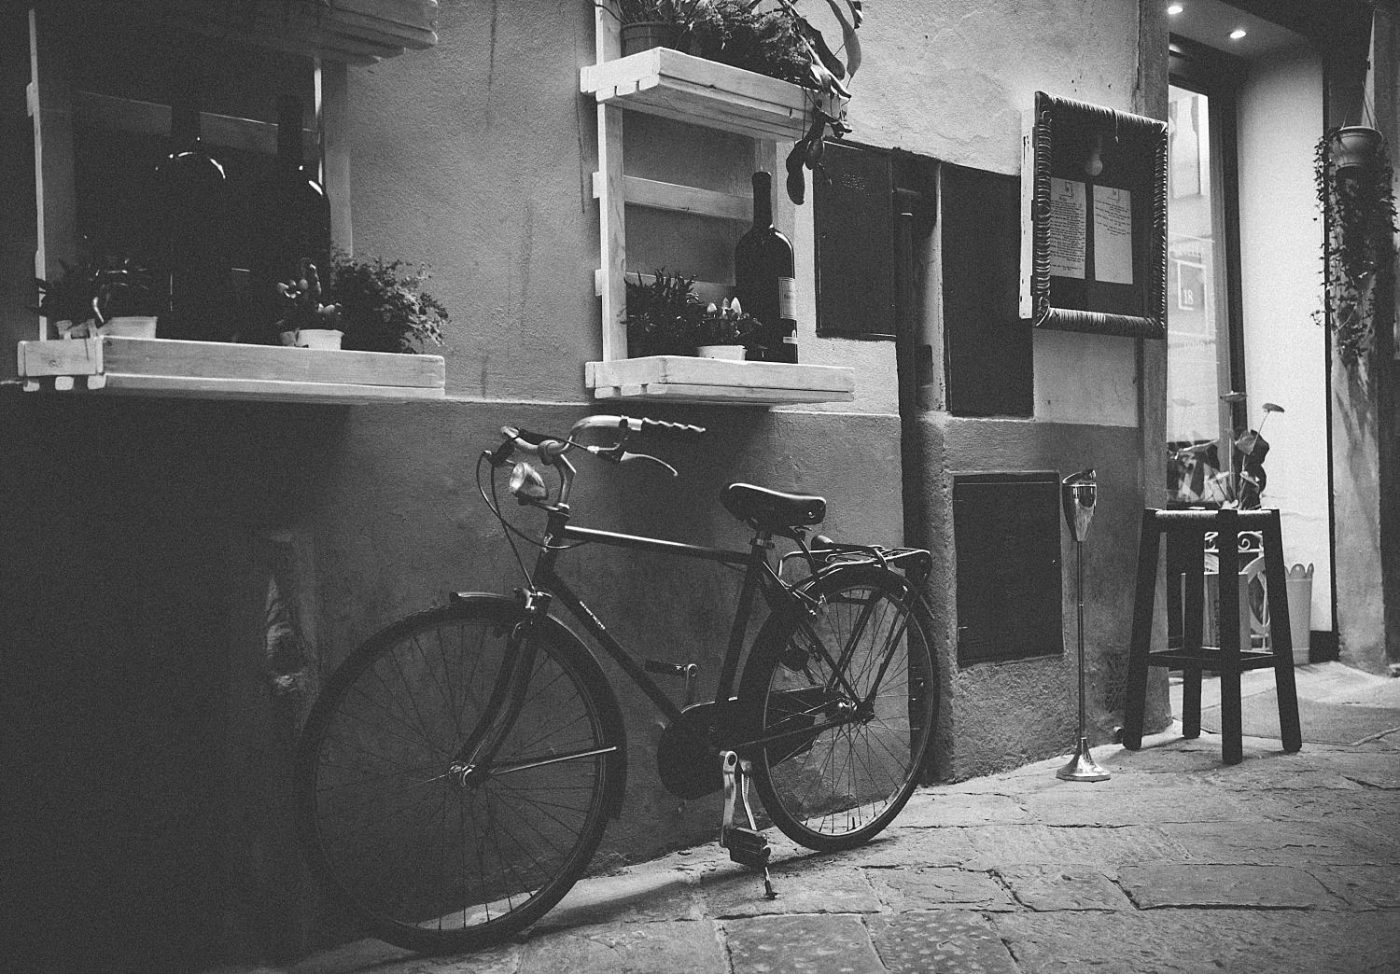 Retro bicycle in Rome Italy